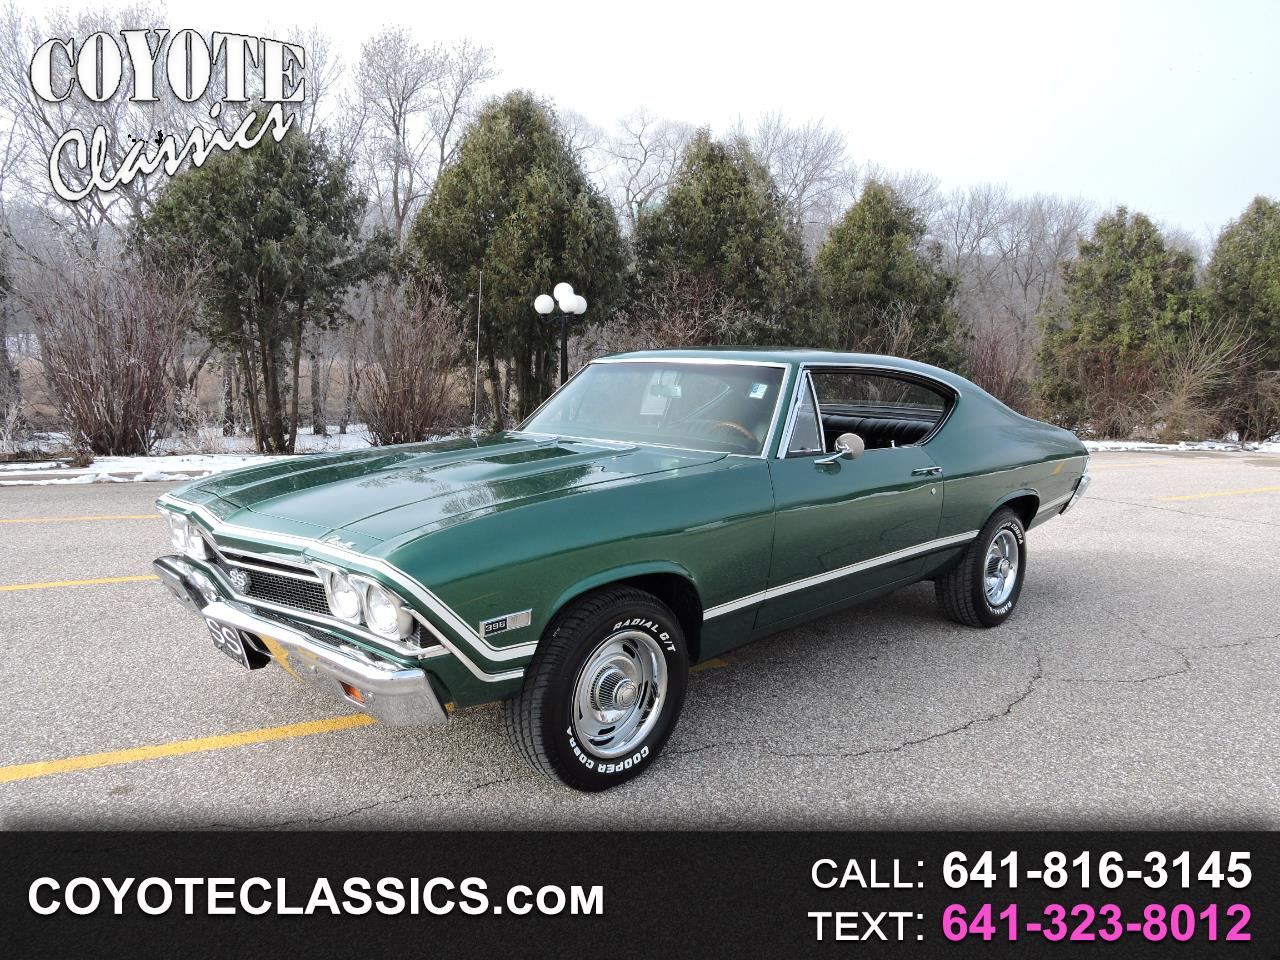 Used Cars For Sale Greene Ia 50636 Coyote Classics 1968 Chevrolet Chevelle Ss